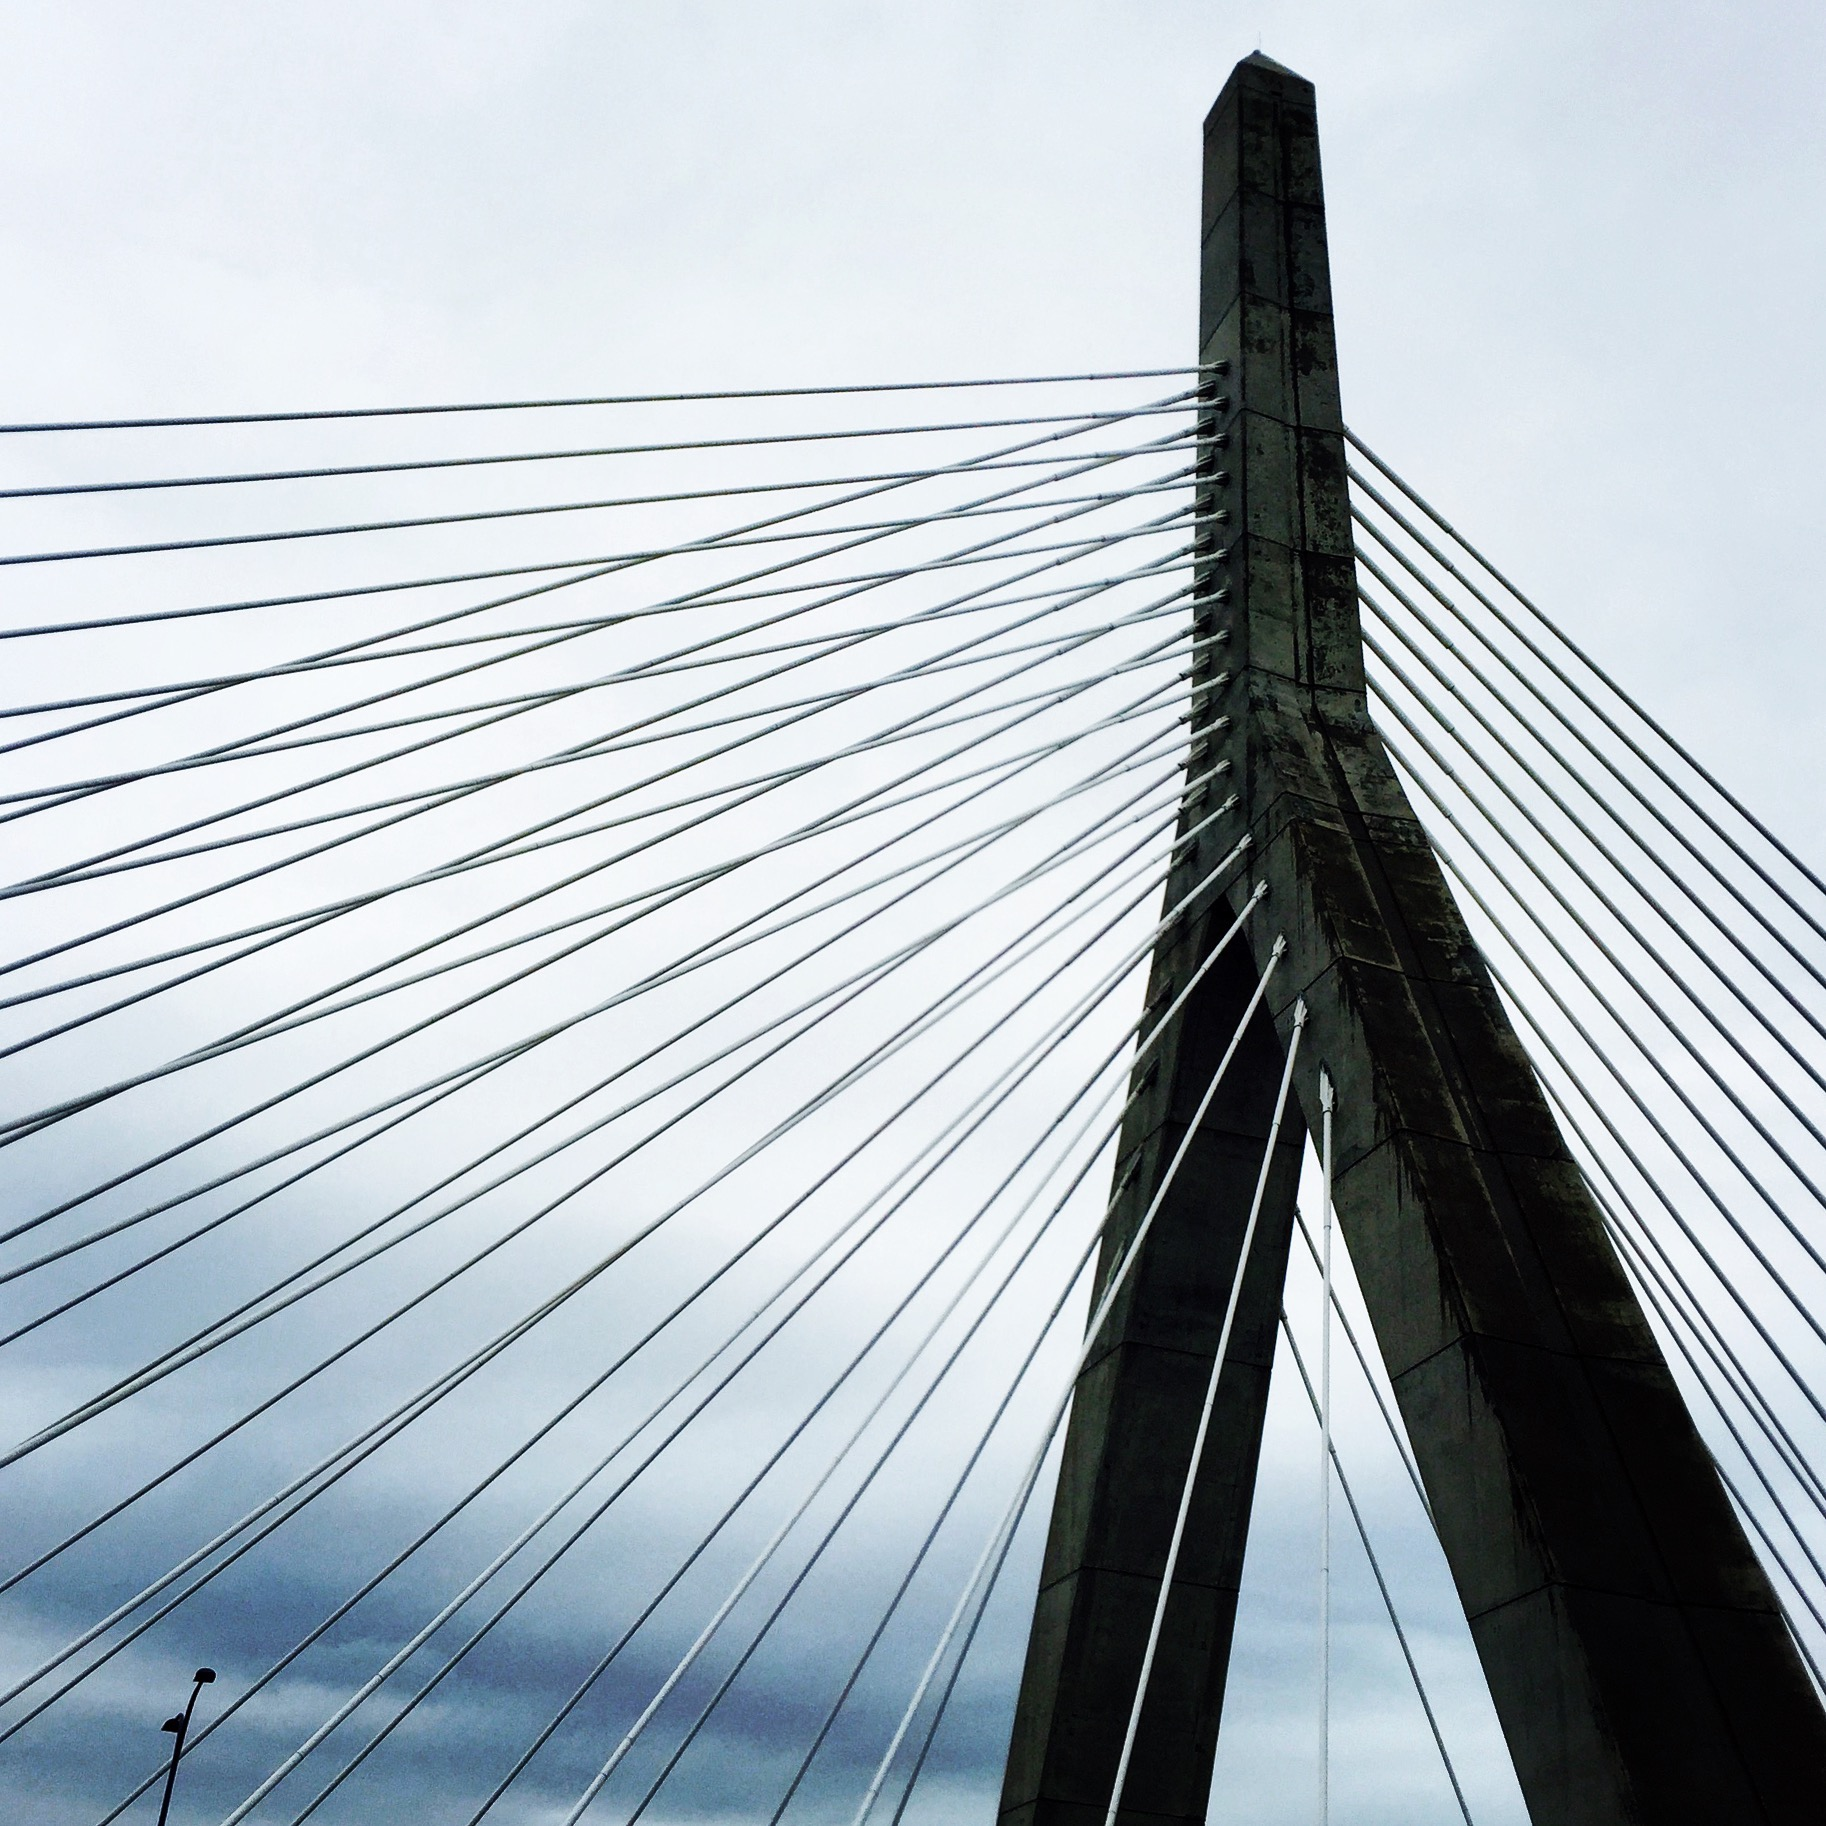 Zakim Bunker Hill Bridge, Boston, MA